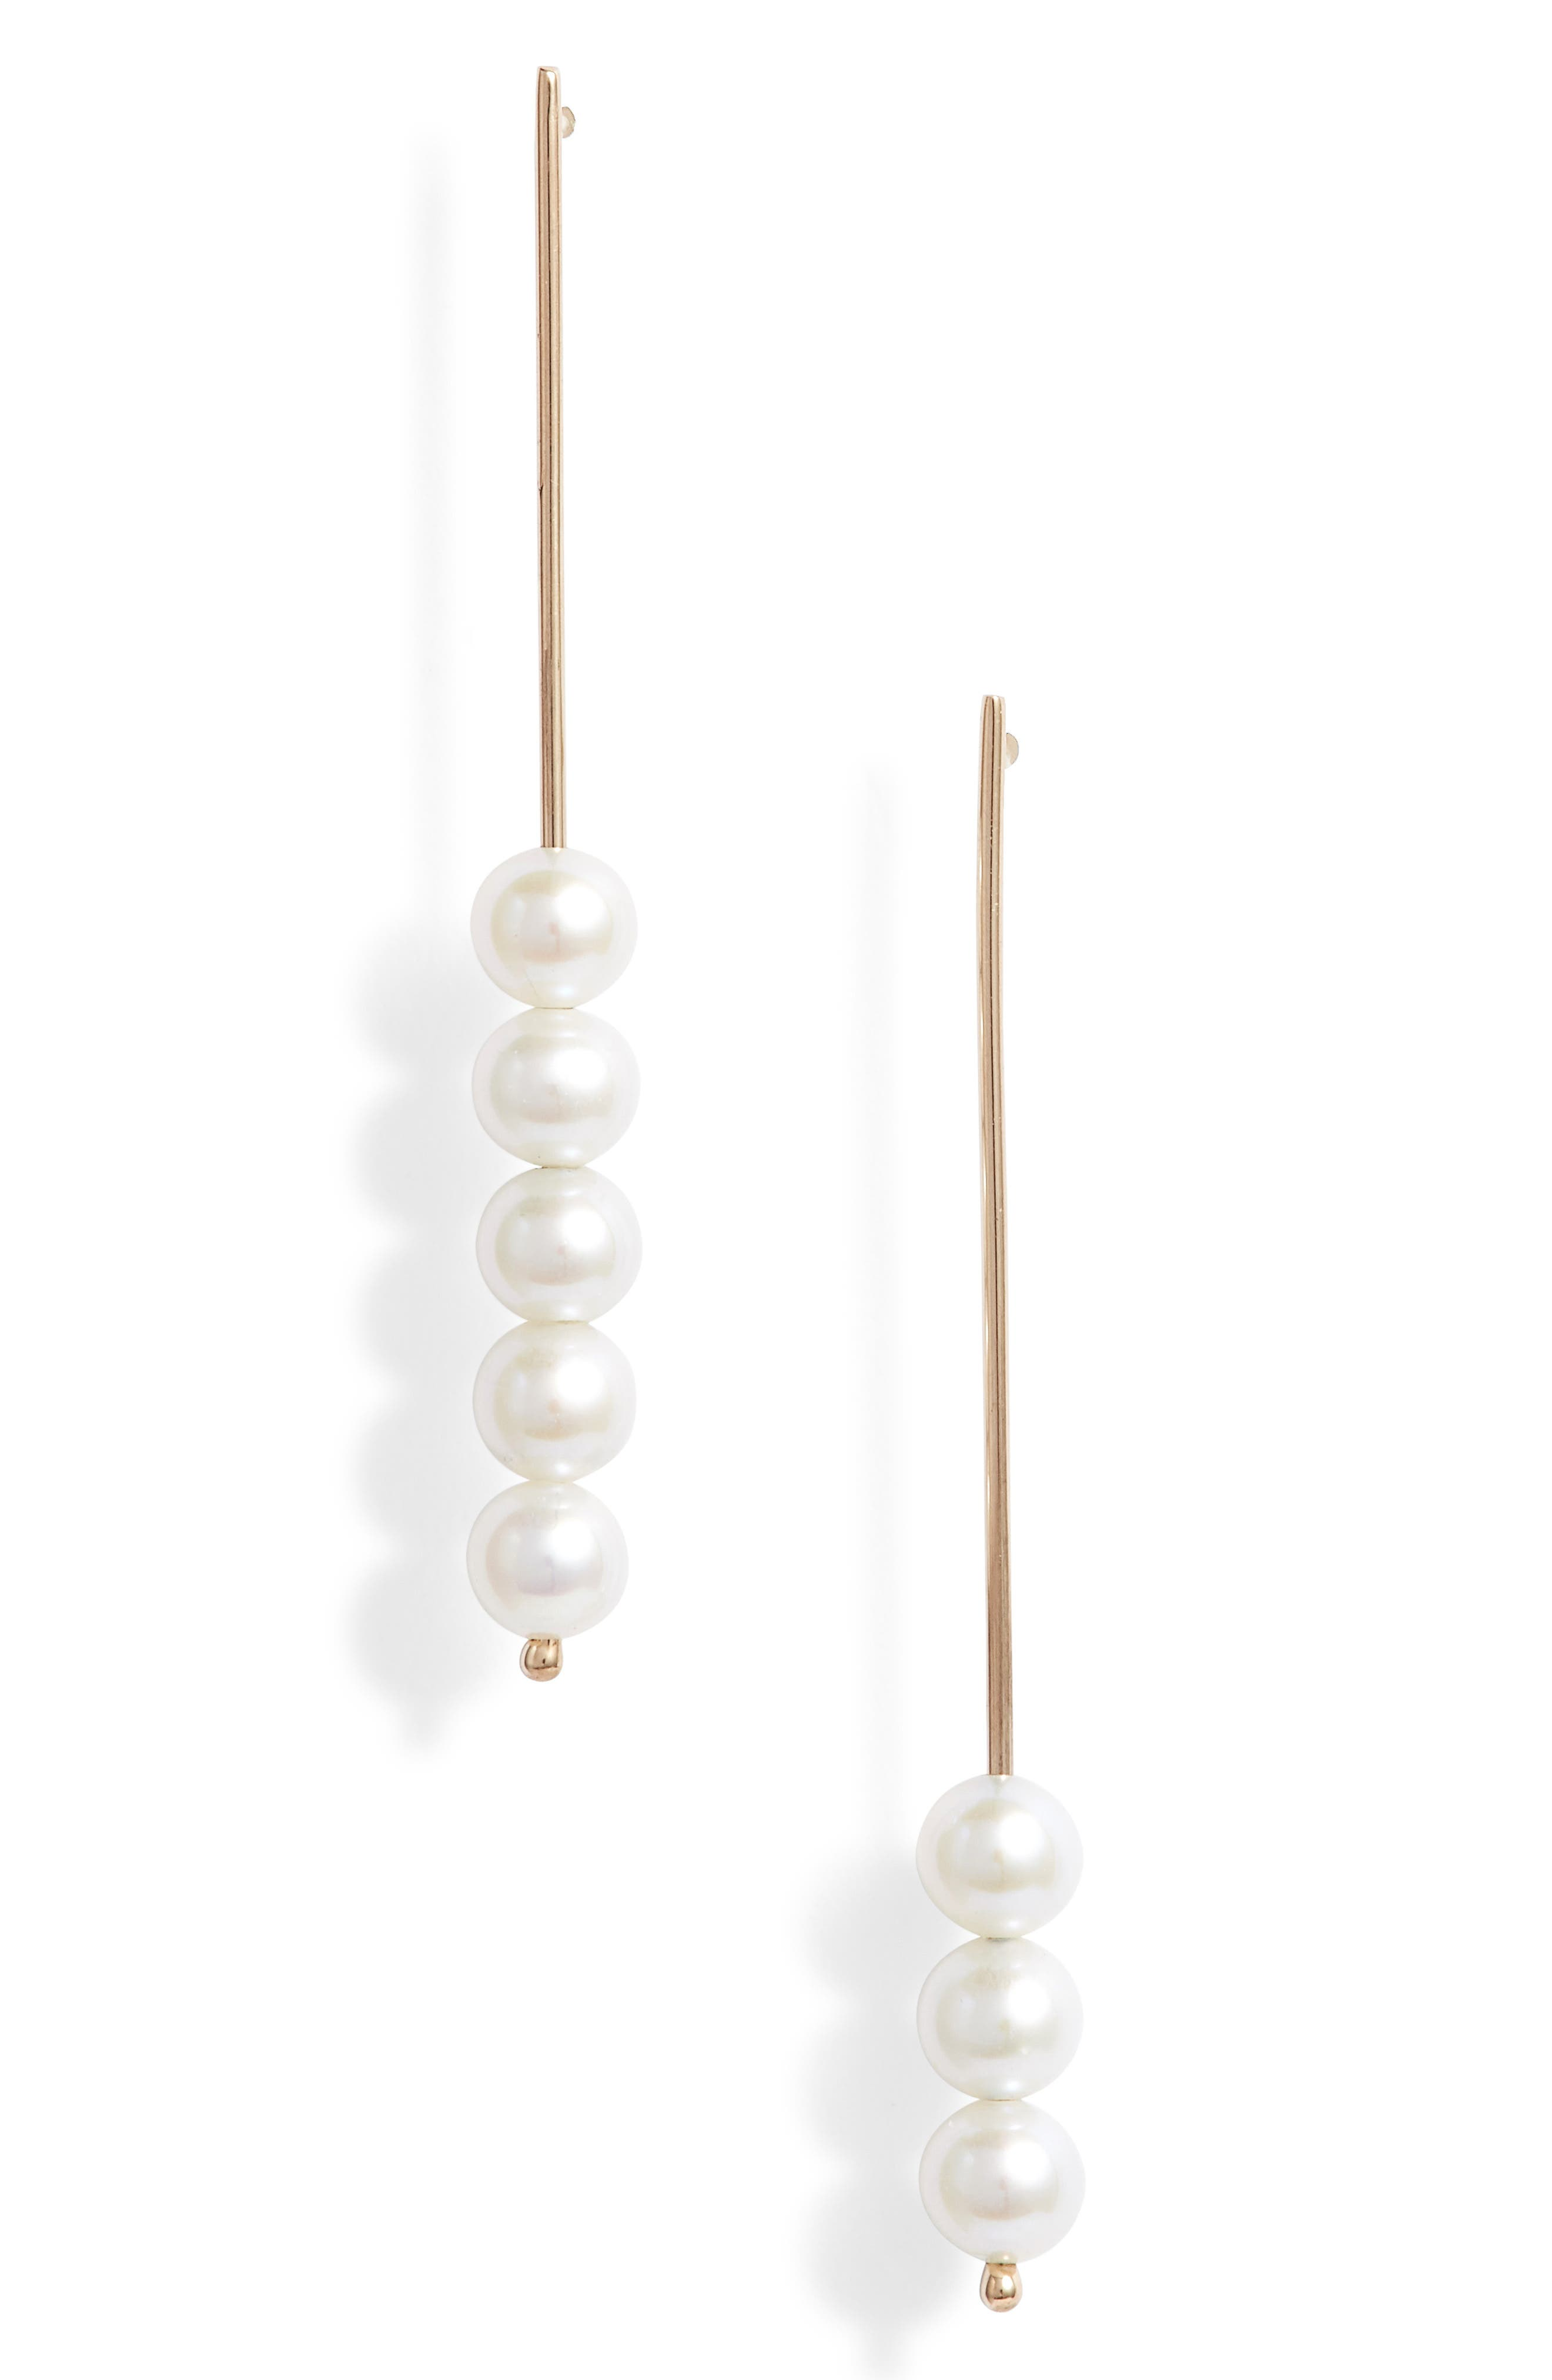 Baby Pearl Stick Pin Linear Drop Mismatch Earrings,                             Main thumbnail 1, color,                             Yellow Gold/ White Pearl